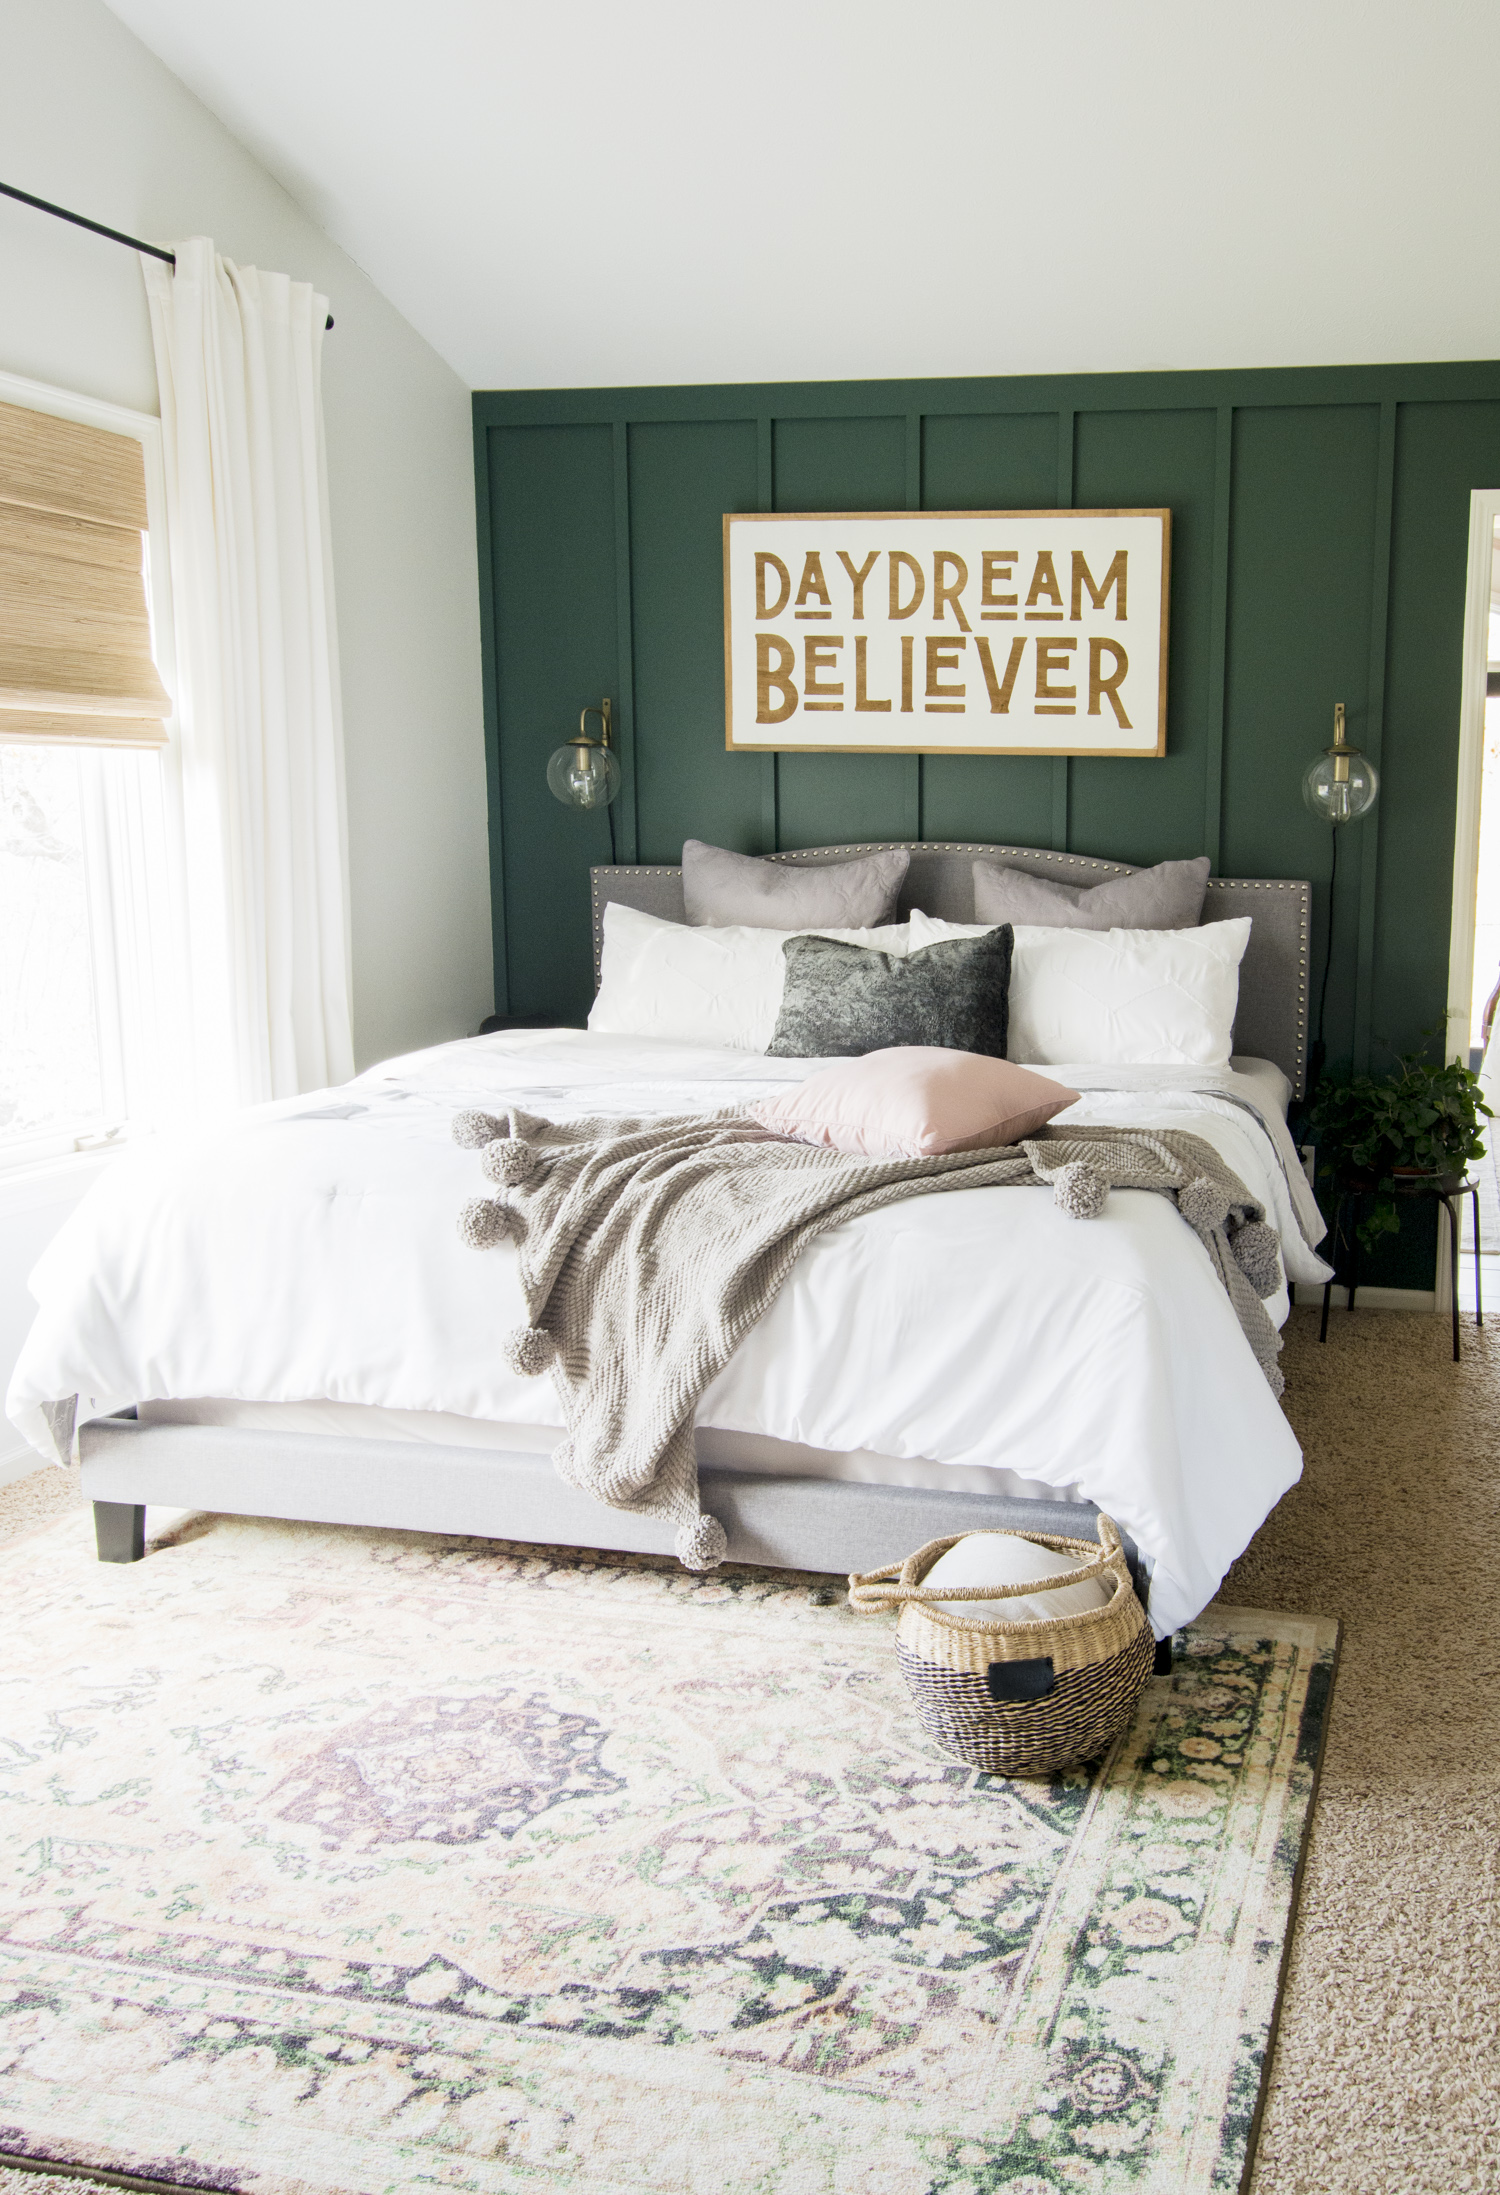 Modern farmhouse bedding for restful sleep.